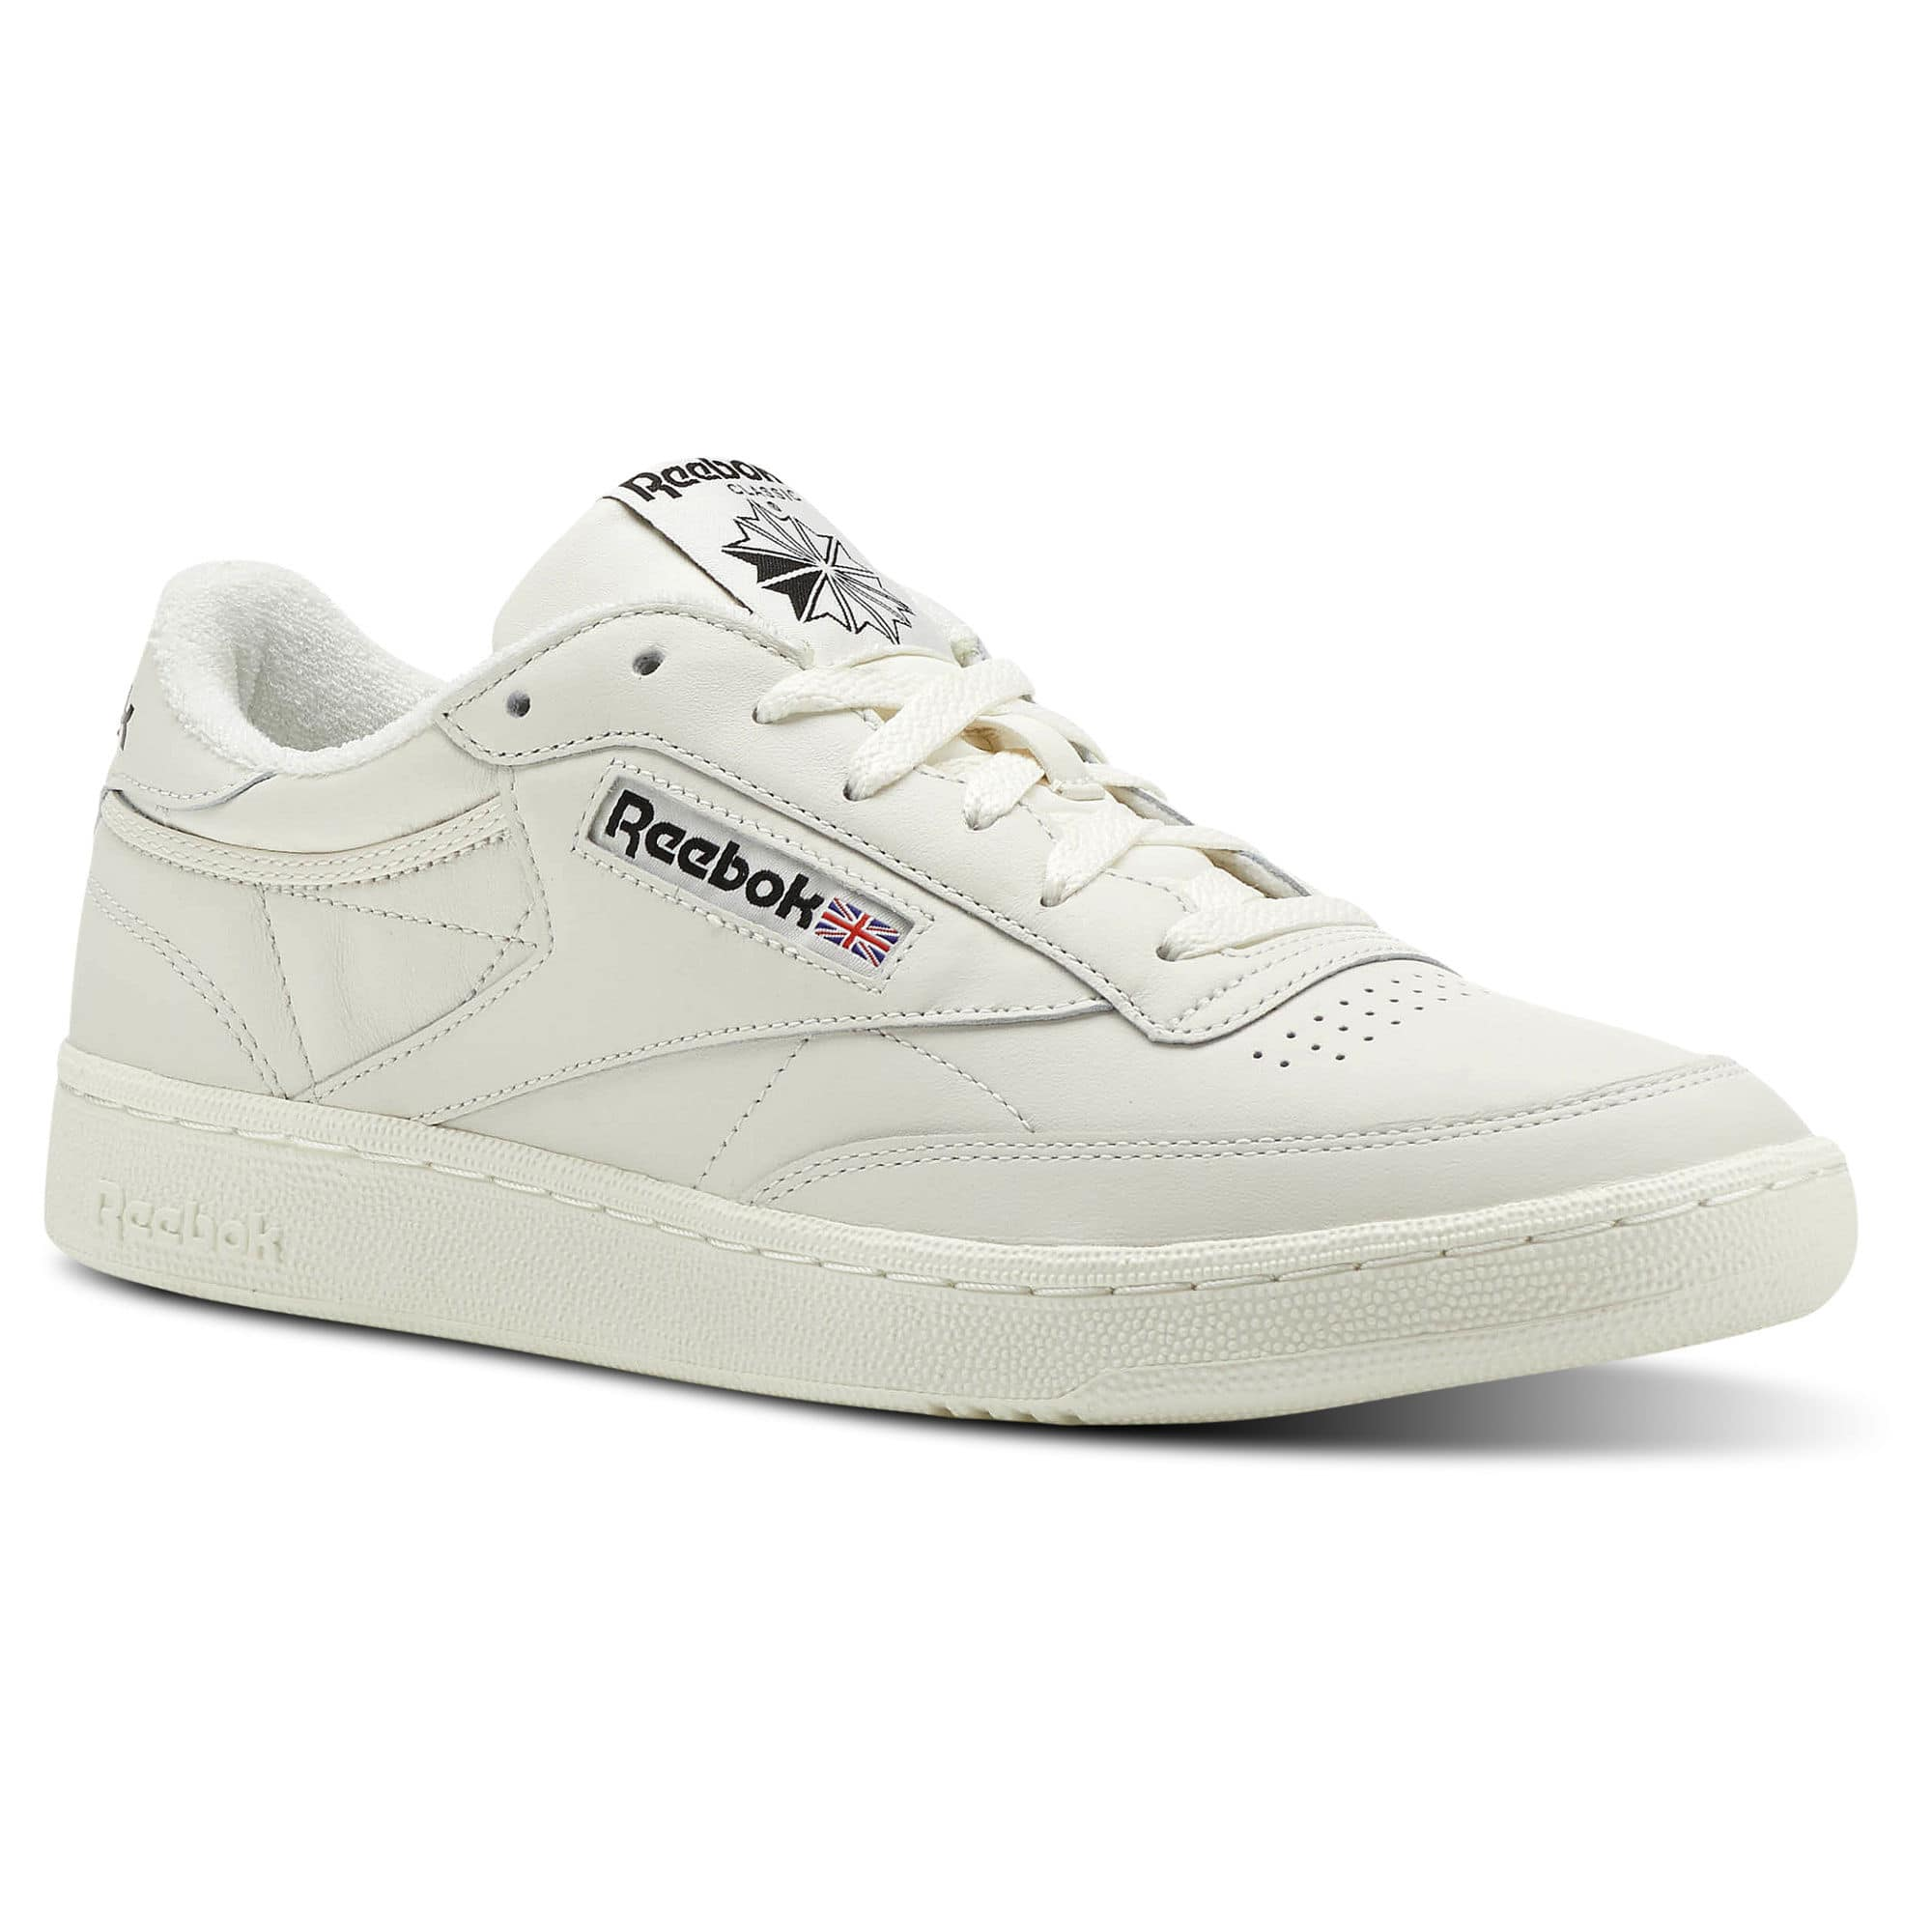 40 Men's C Club Vintage 85 Reebok Oq61p